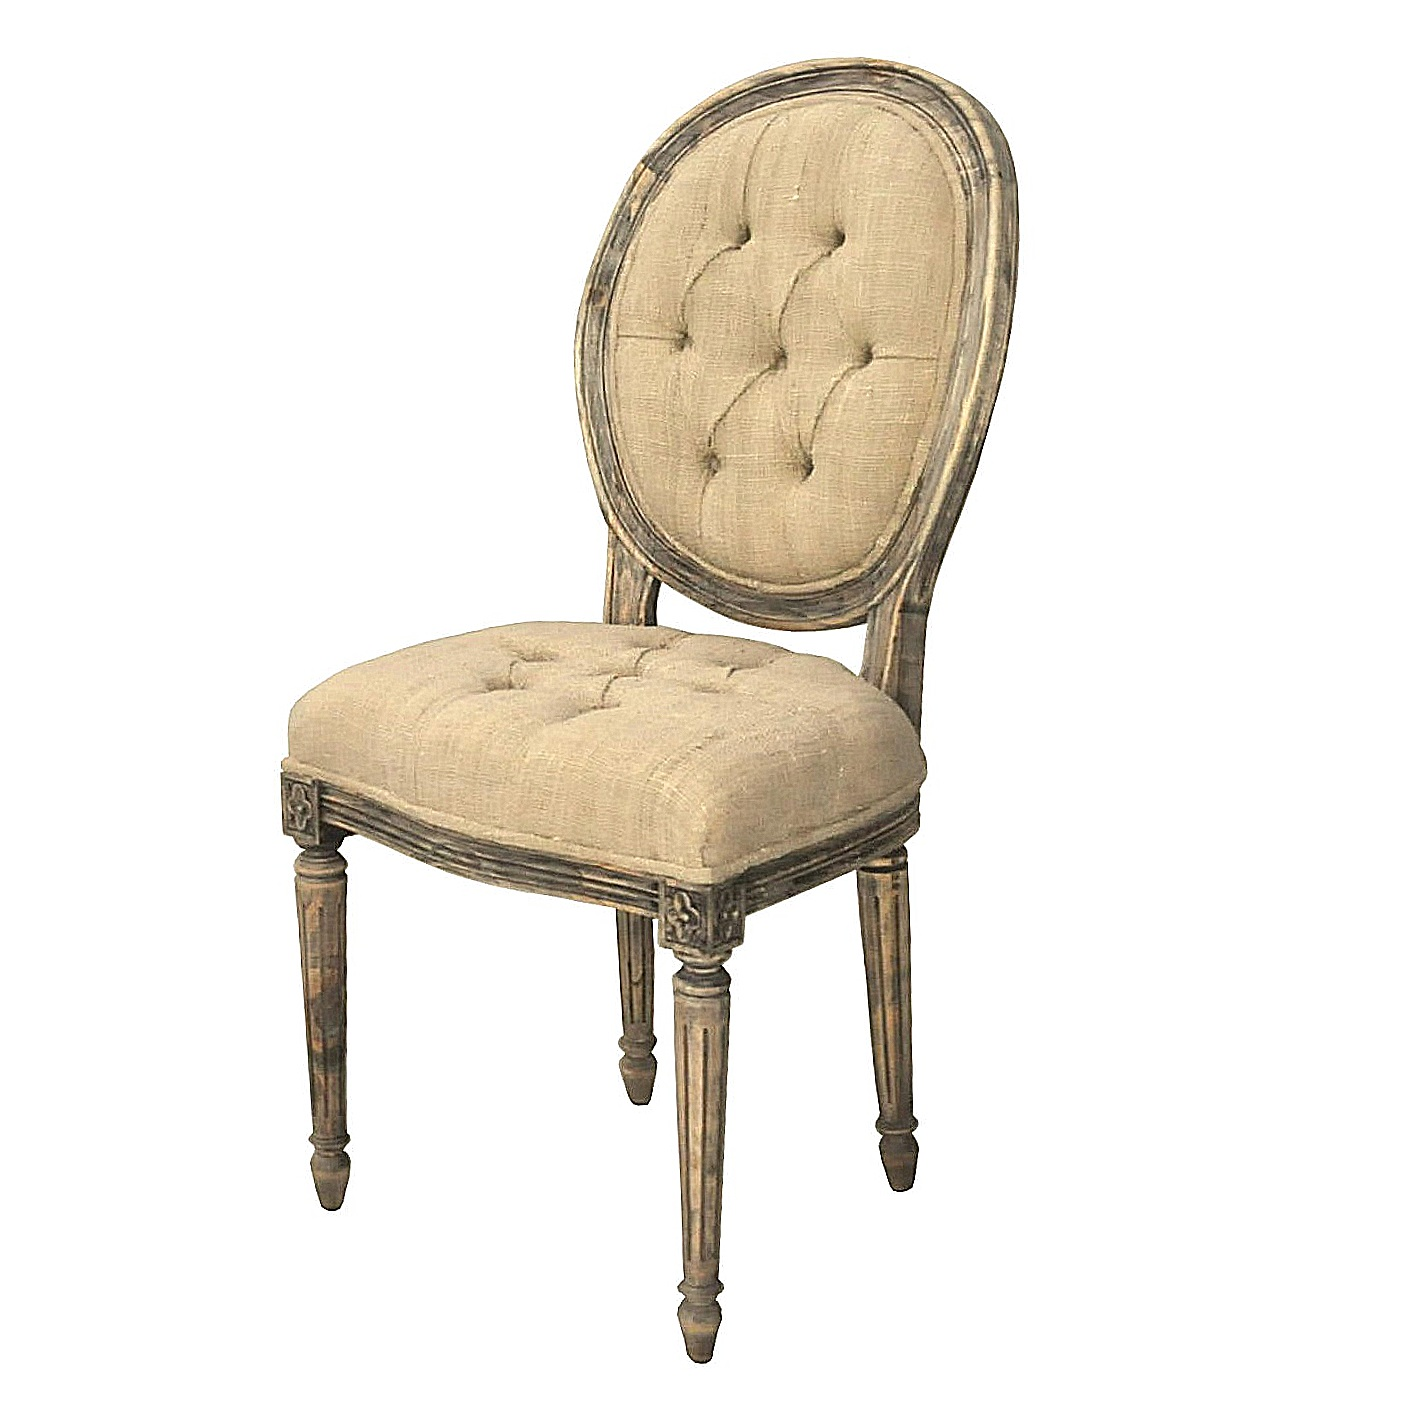 chaise apolline de style louis xvi dossier m daillon capitonn e toile de jute le d p t des docks. Black Bedroom Furniture Sets. Home Design Ideas